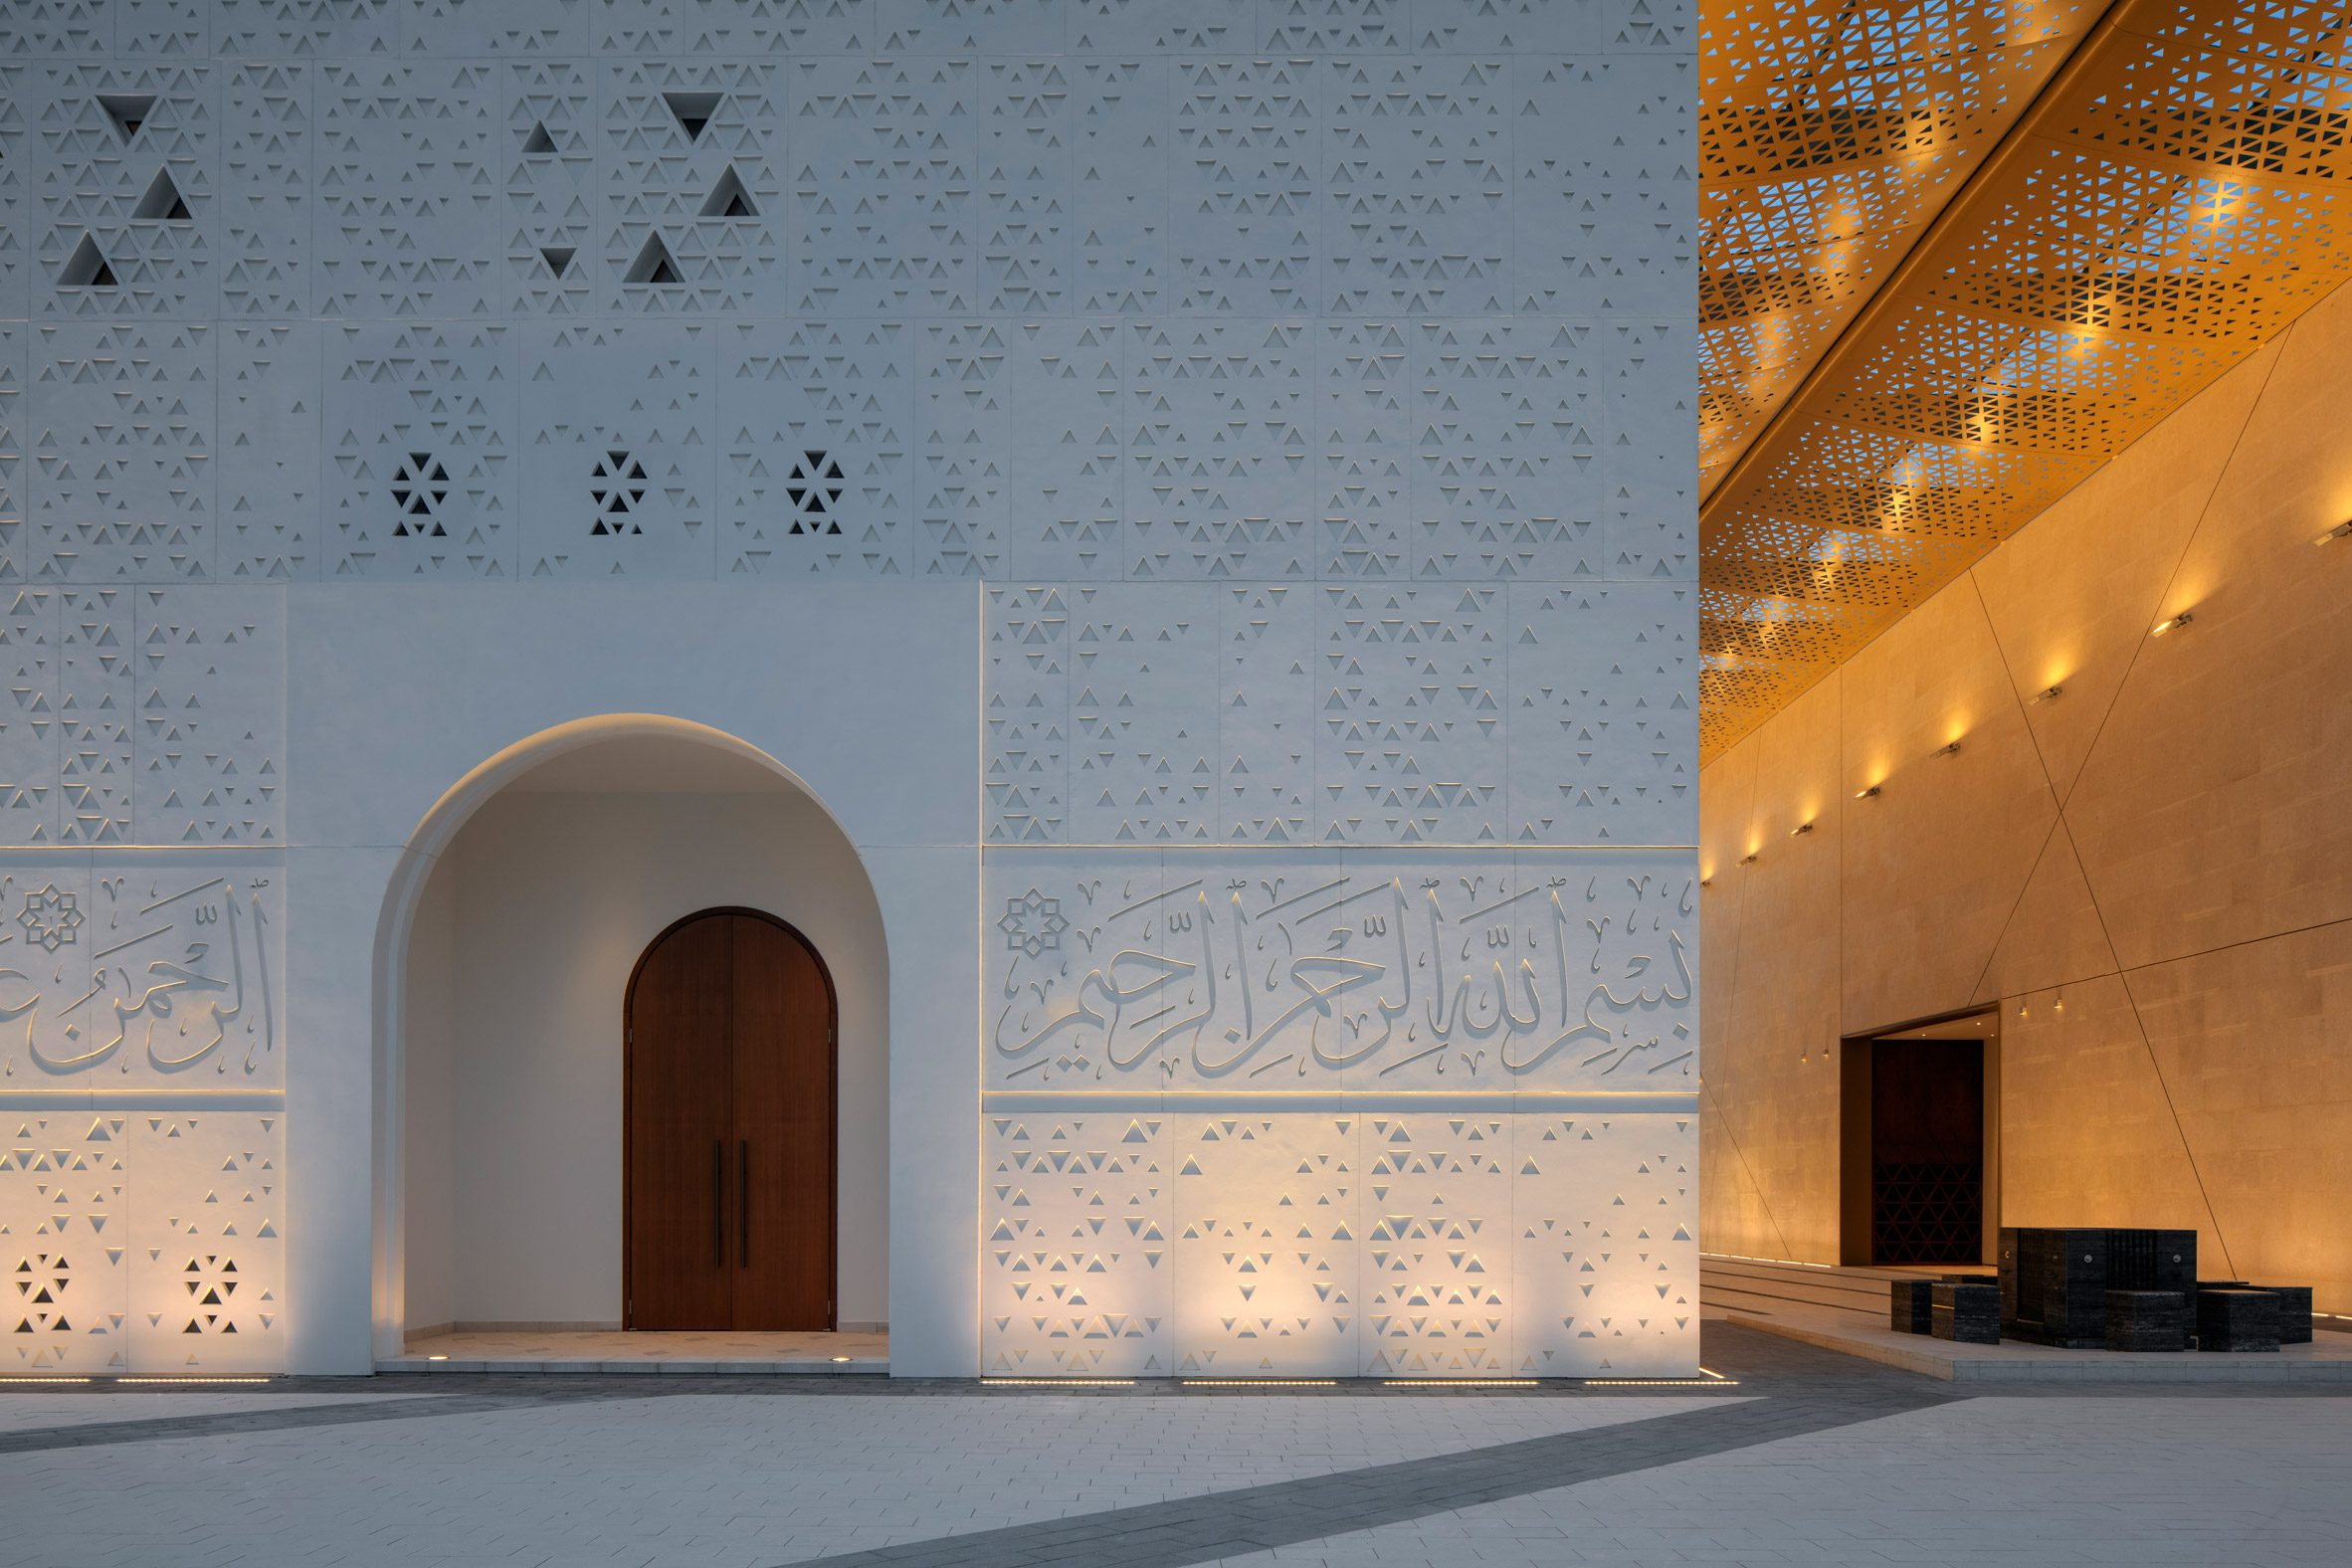 Calligraphy on mosque wall